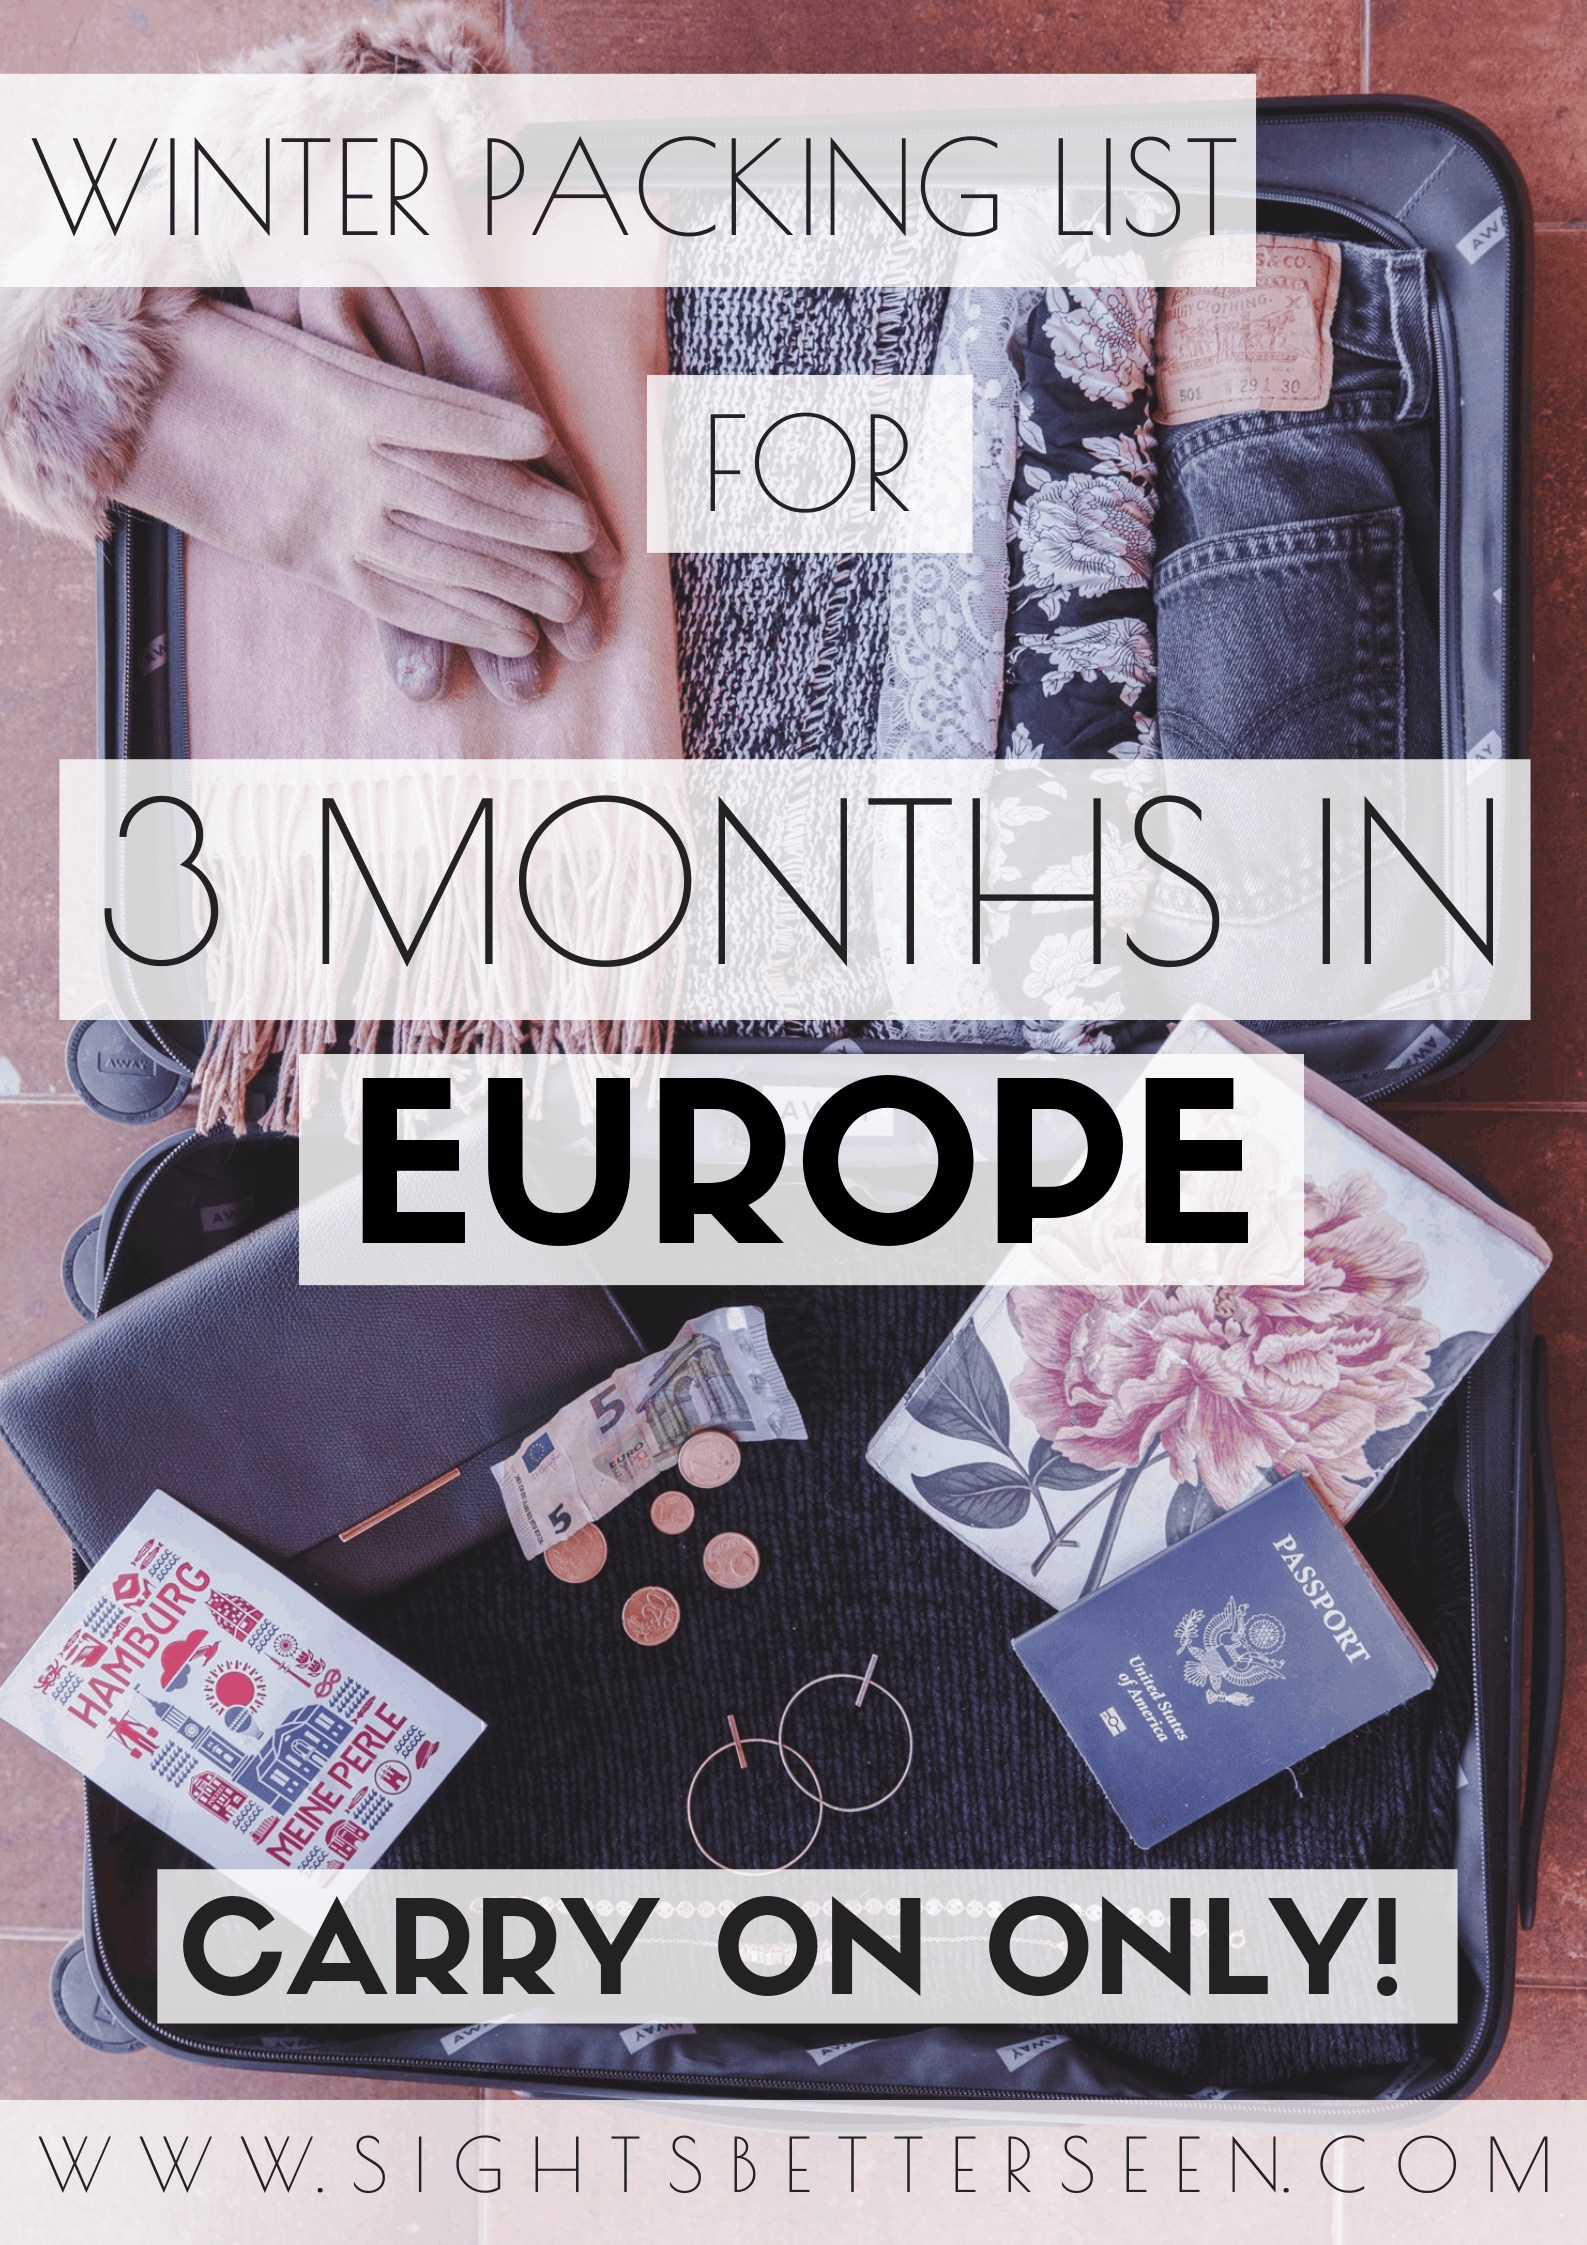 Female winter packing list for 3 Months in Europe with a carry on suitcase. This packing list will help you choose the best outfits for cold weather travel!